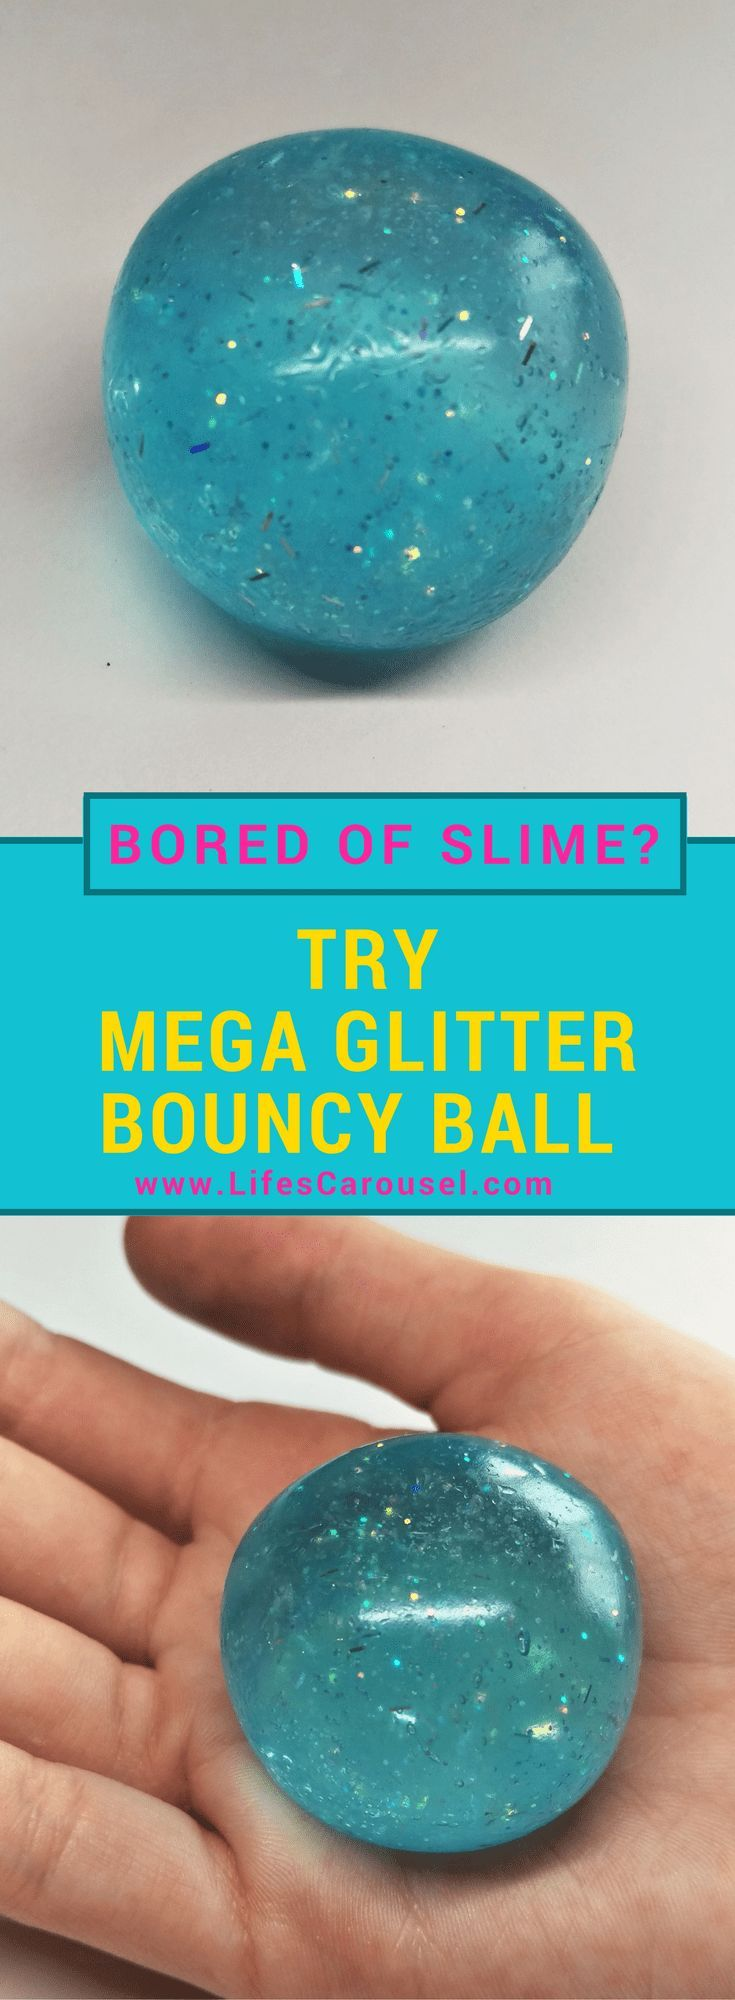 DIY Craft: DIY Bouncy Ball | EASY Kids Craft - Make your own Bouncy Balls using the same ingredients as slime! Bored of slime? Try this instead! Super Bouncy Fun!